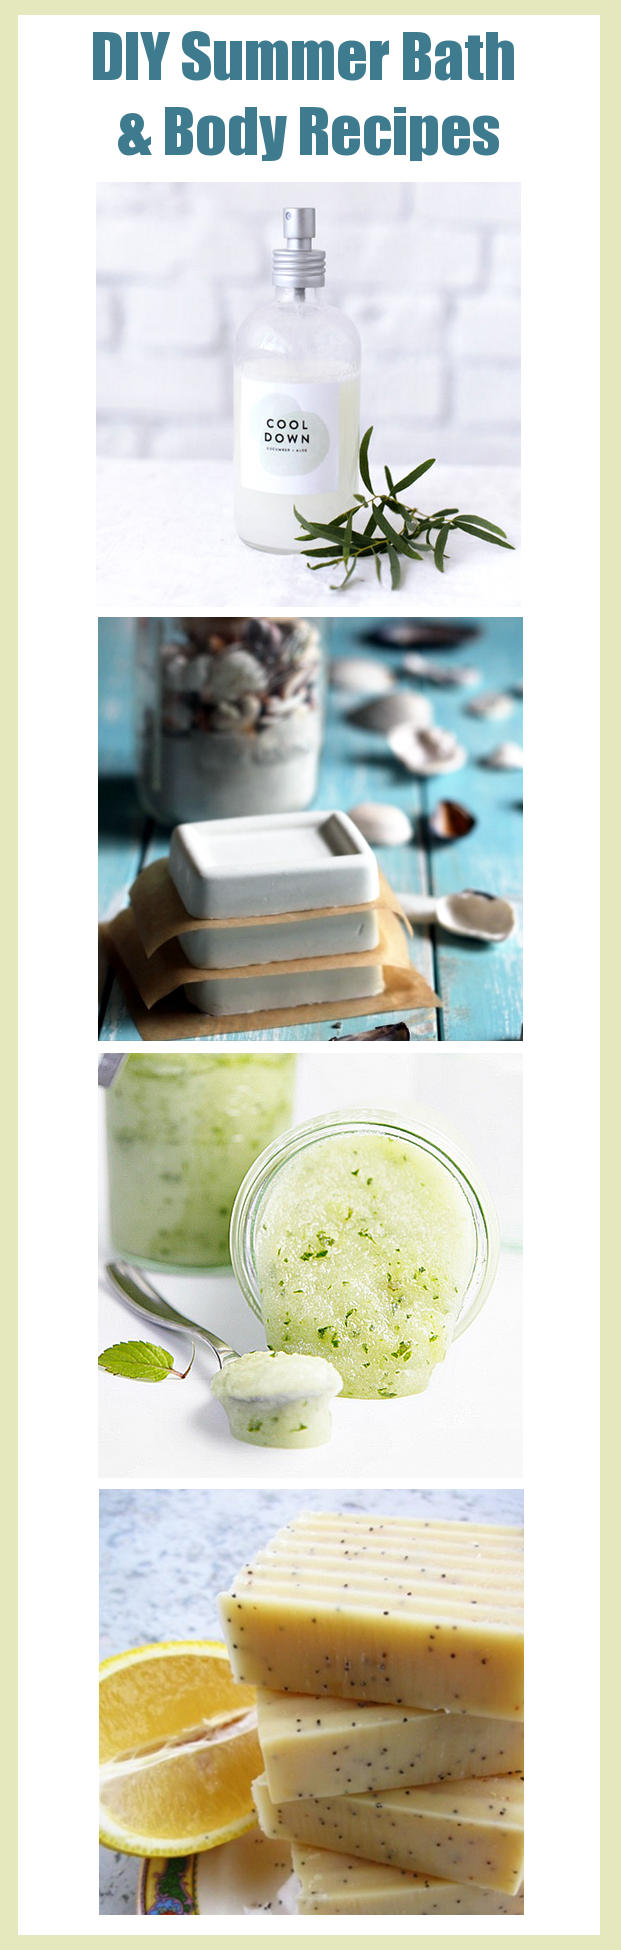 DIY Summer Bath and Body Recipes - Natural Beauty DIY's and More